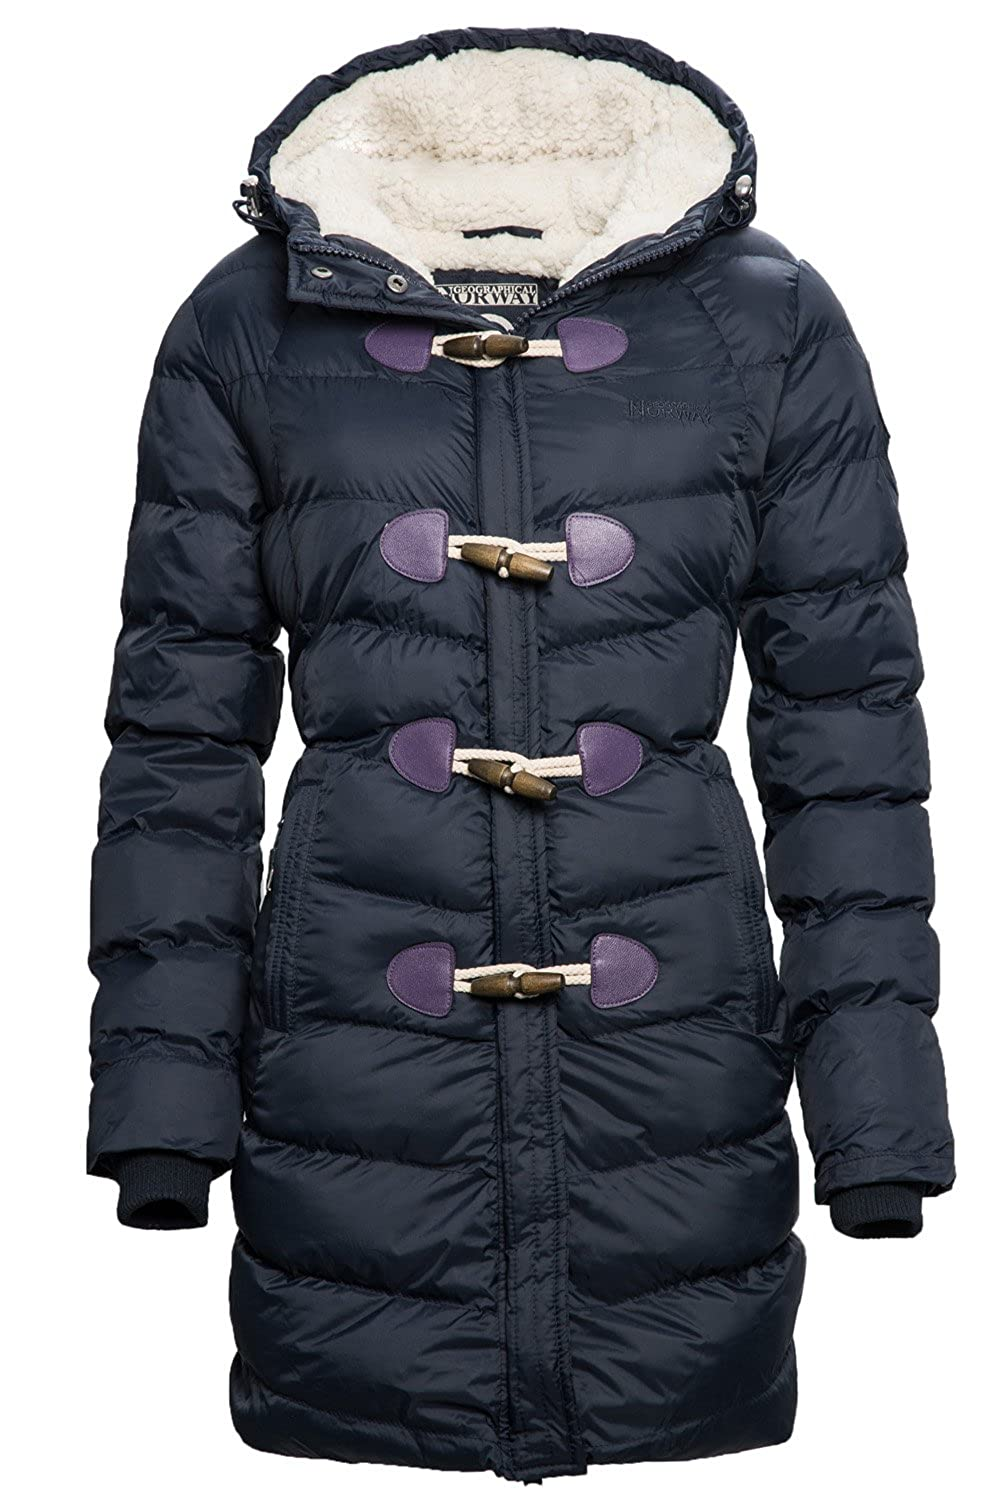 Geographical Norway Beverly Damen Winter Jacke Parka Duffle Mantel Teddyfell